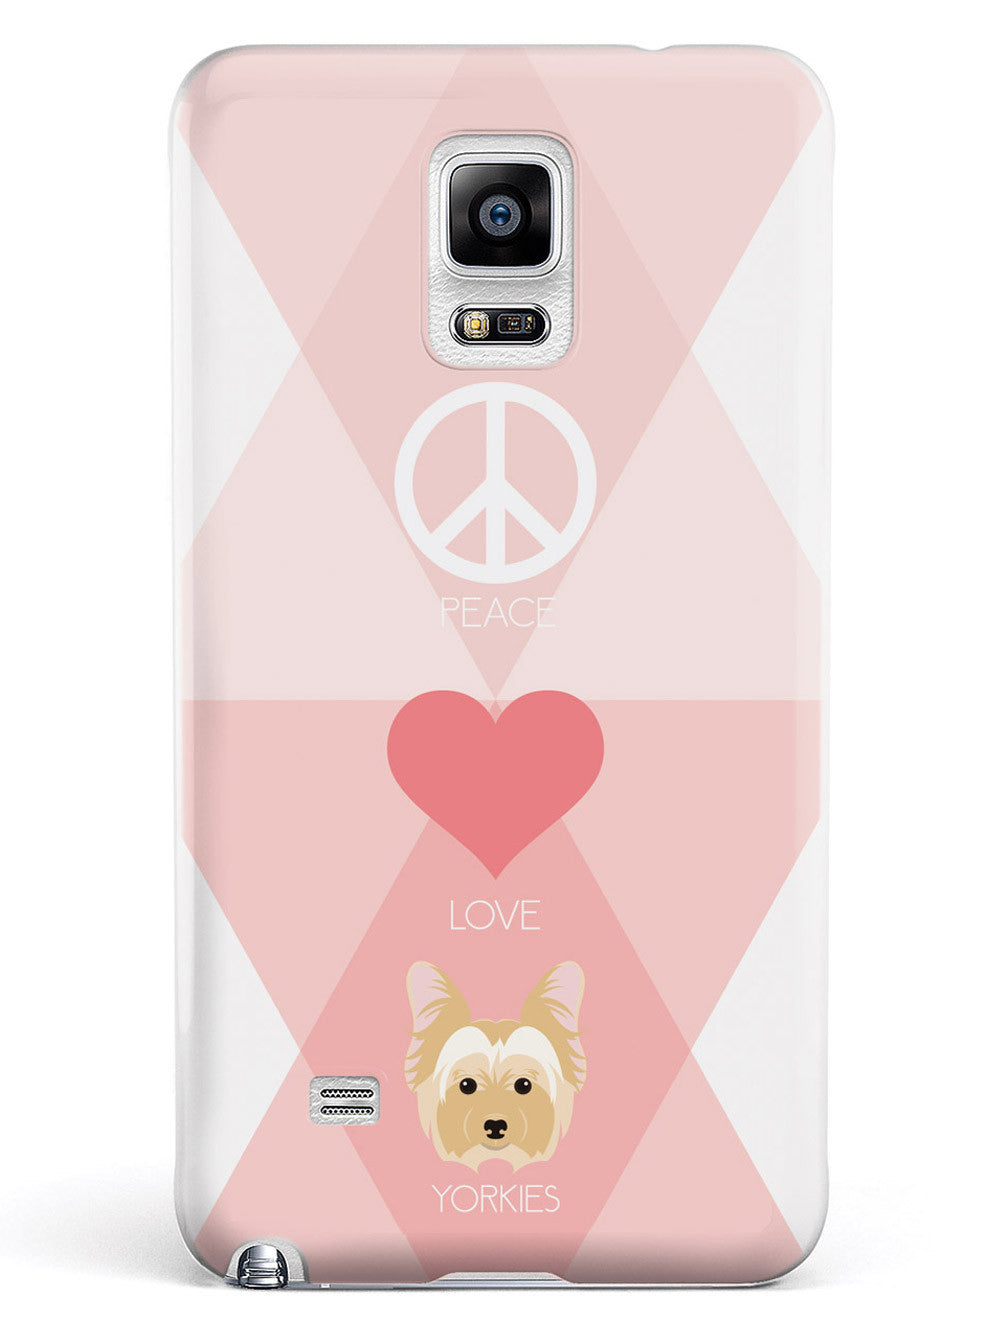 Peace, Love & Yorkies Case